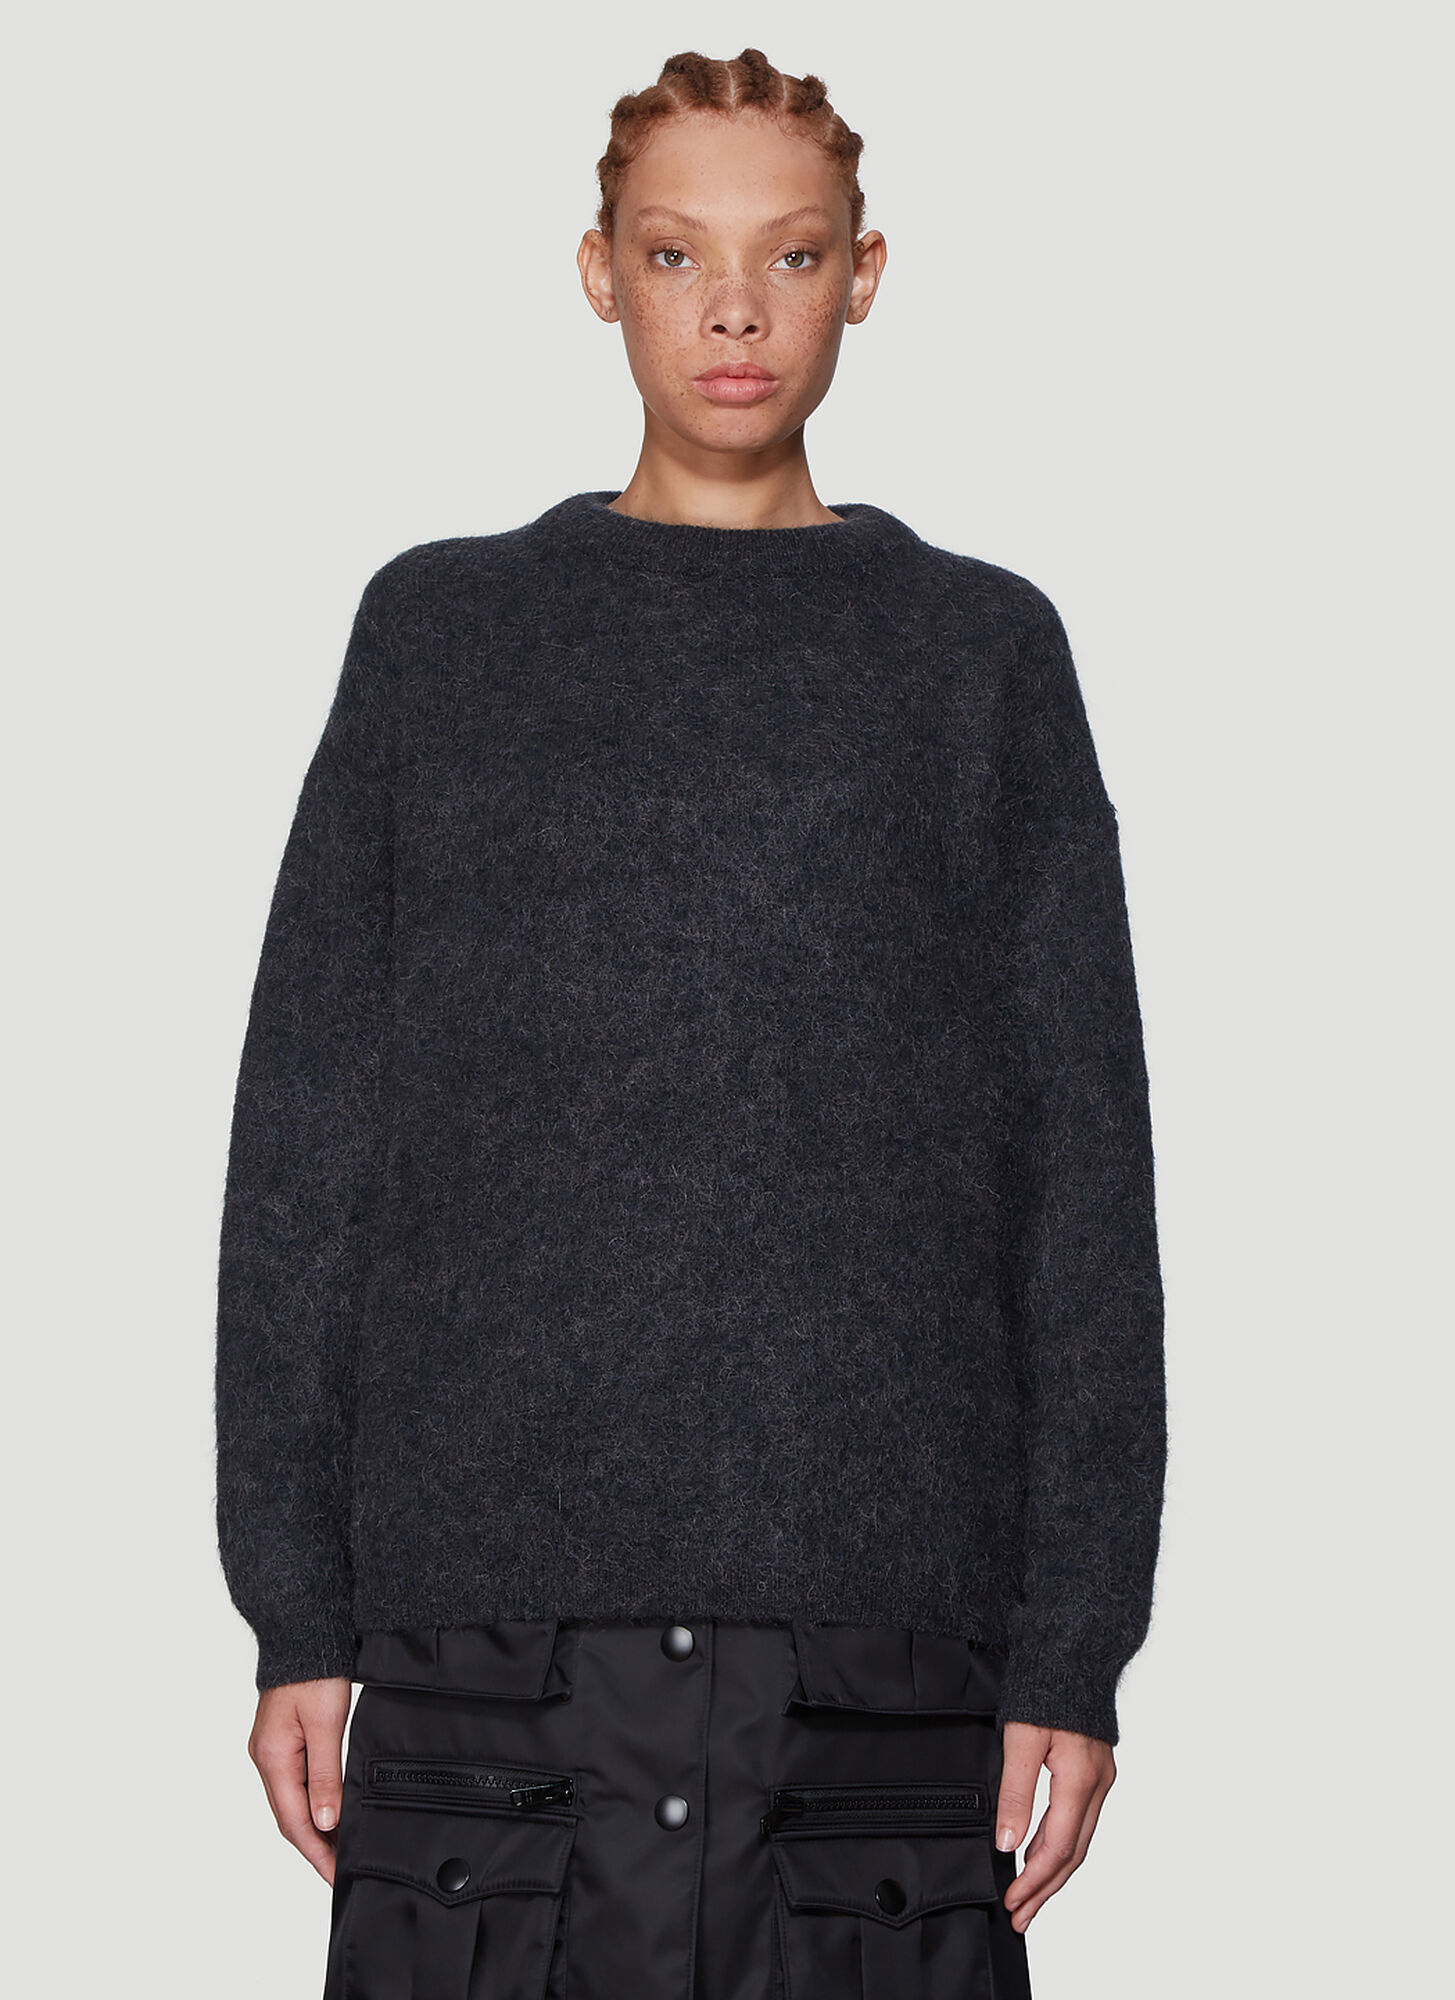 Acne Studios Dramatic Textured Knit Sweater in Grey